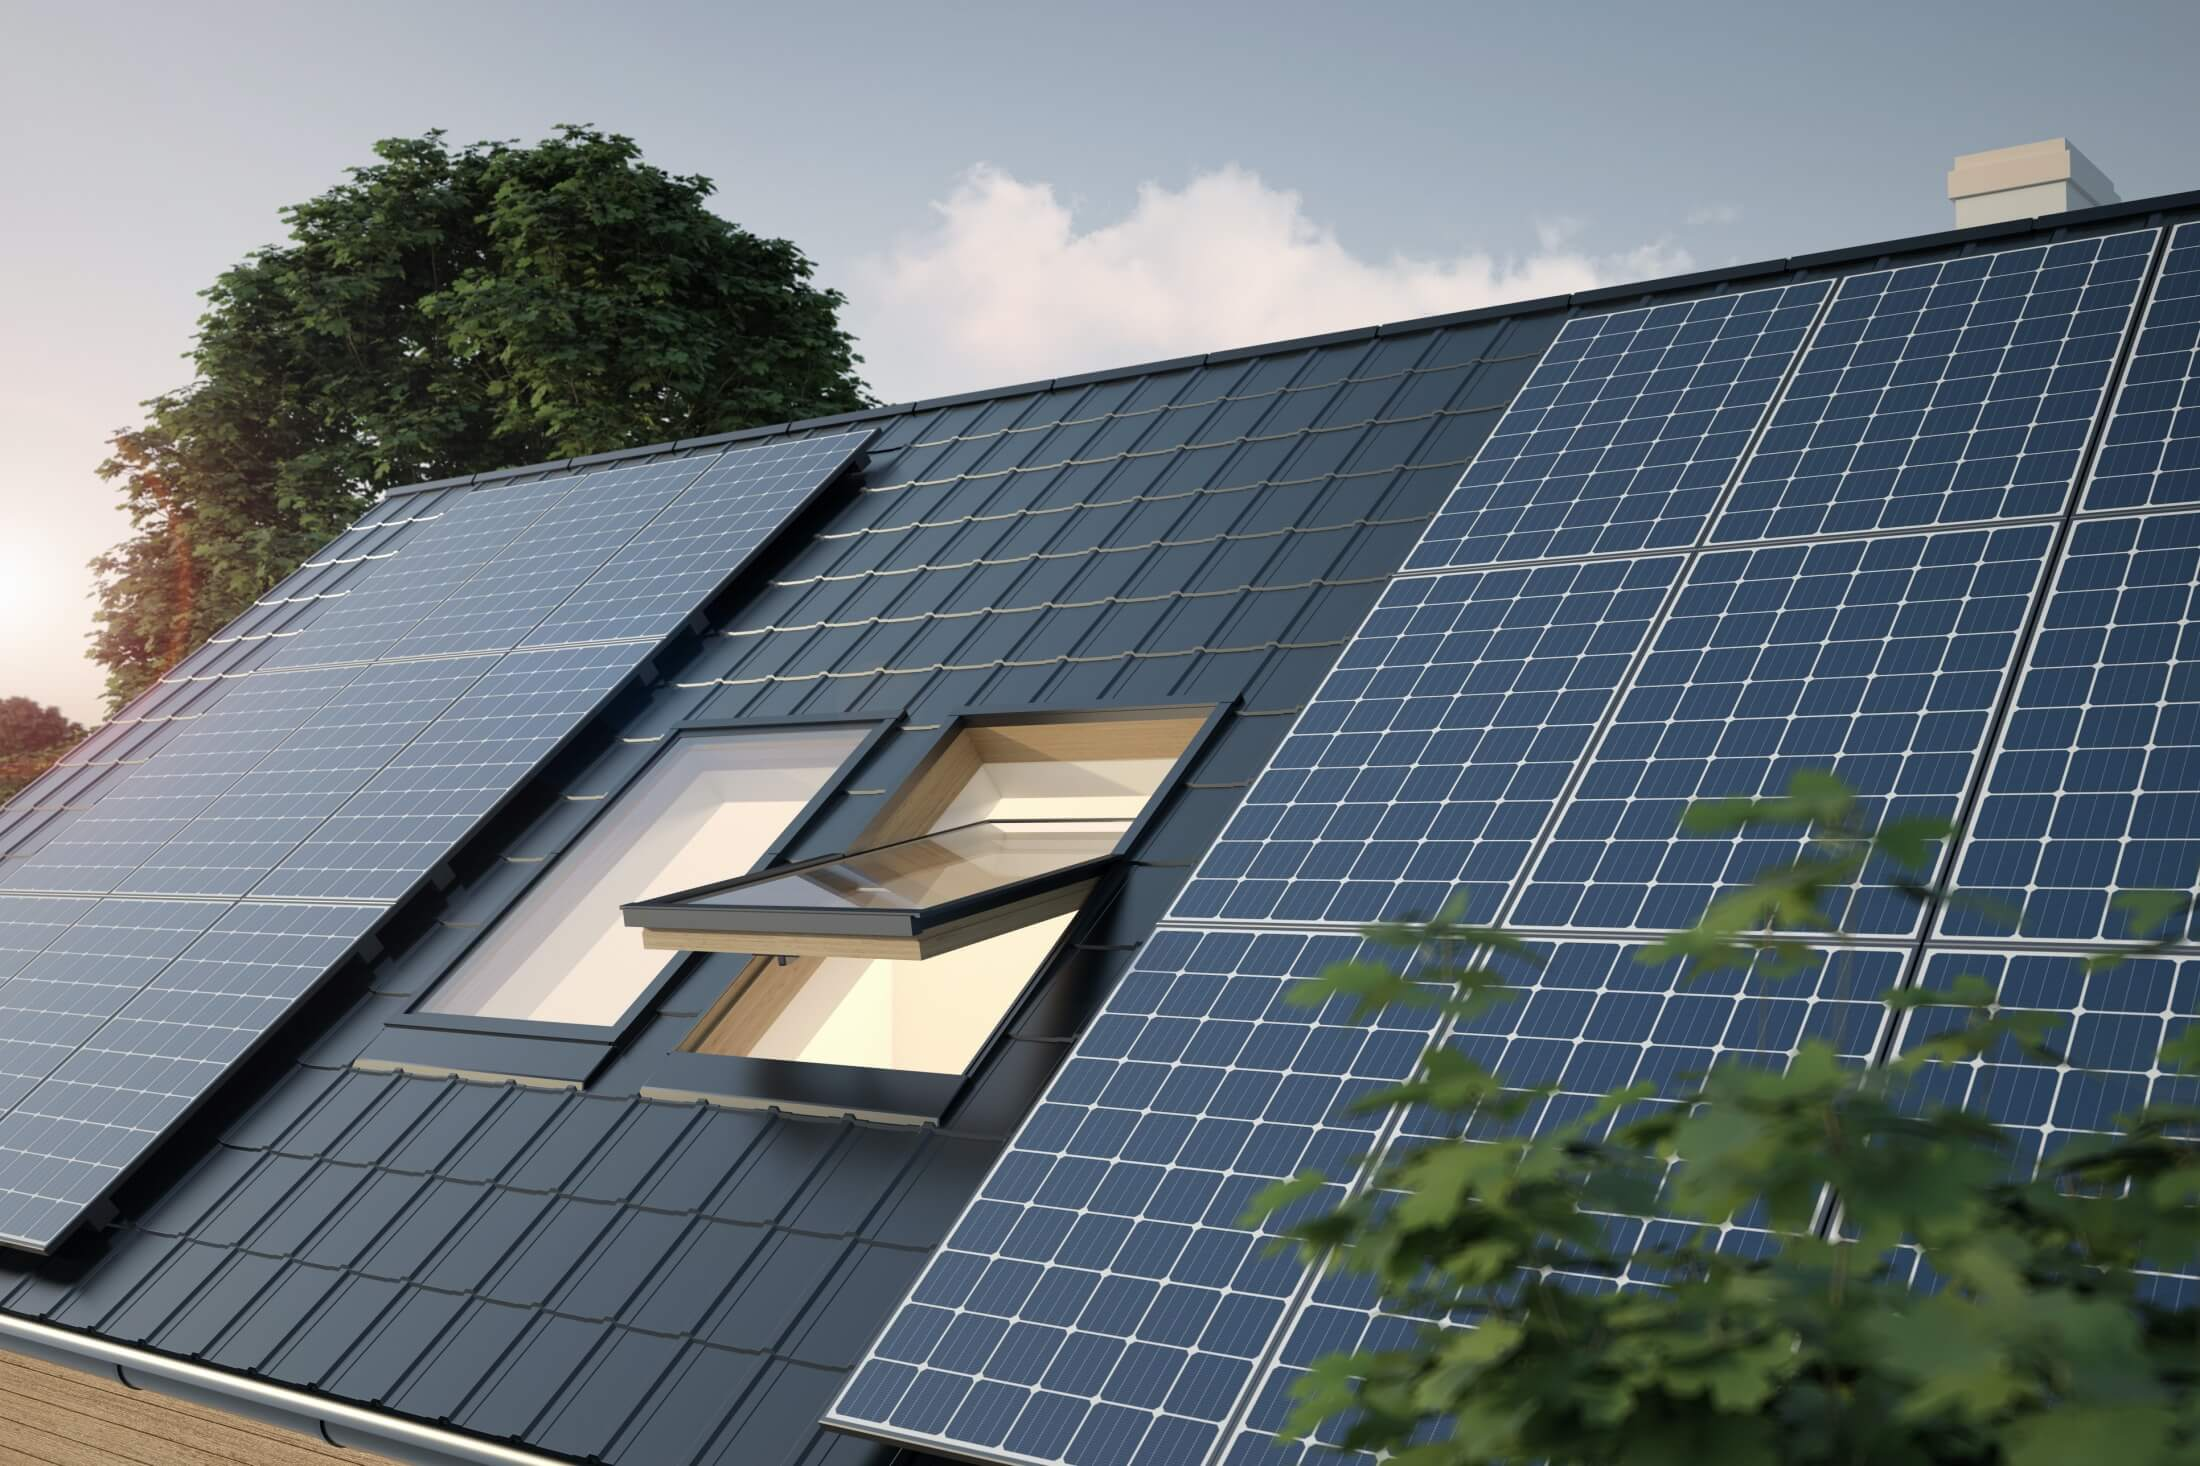 Use green energy by installing solar panels.